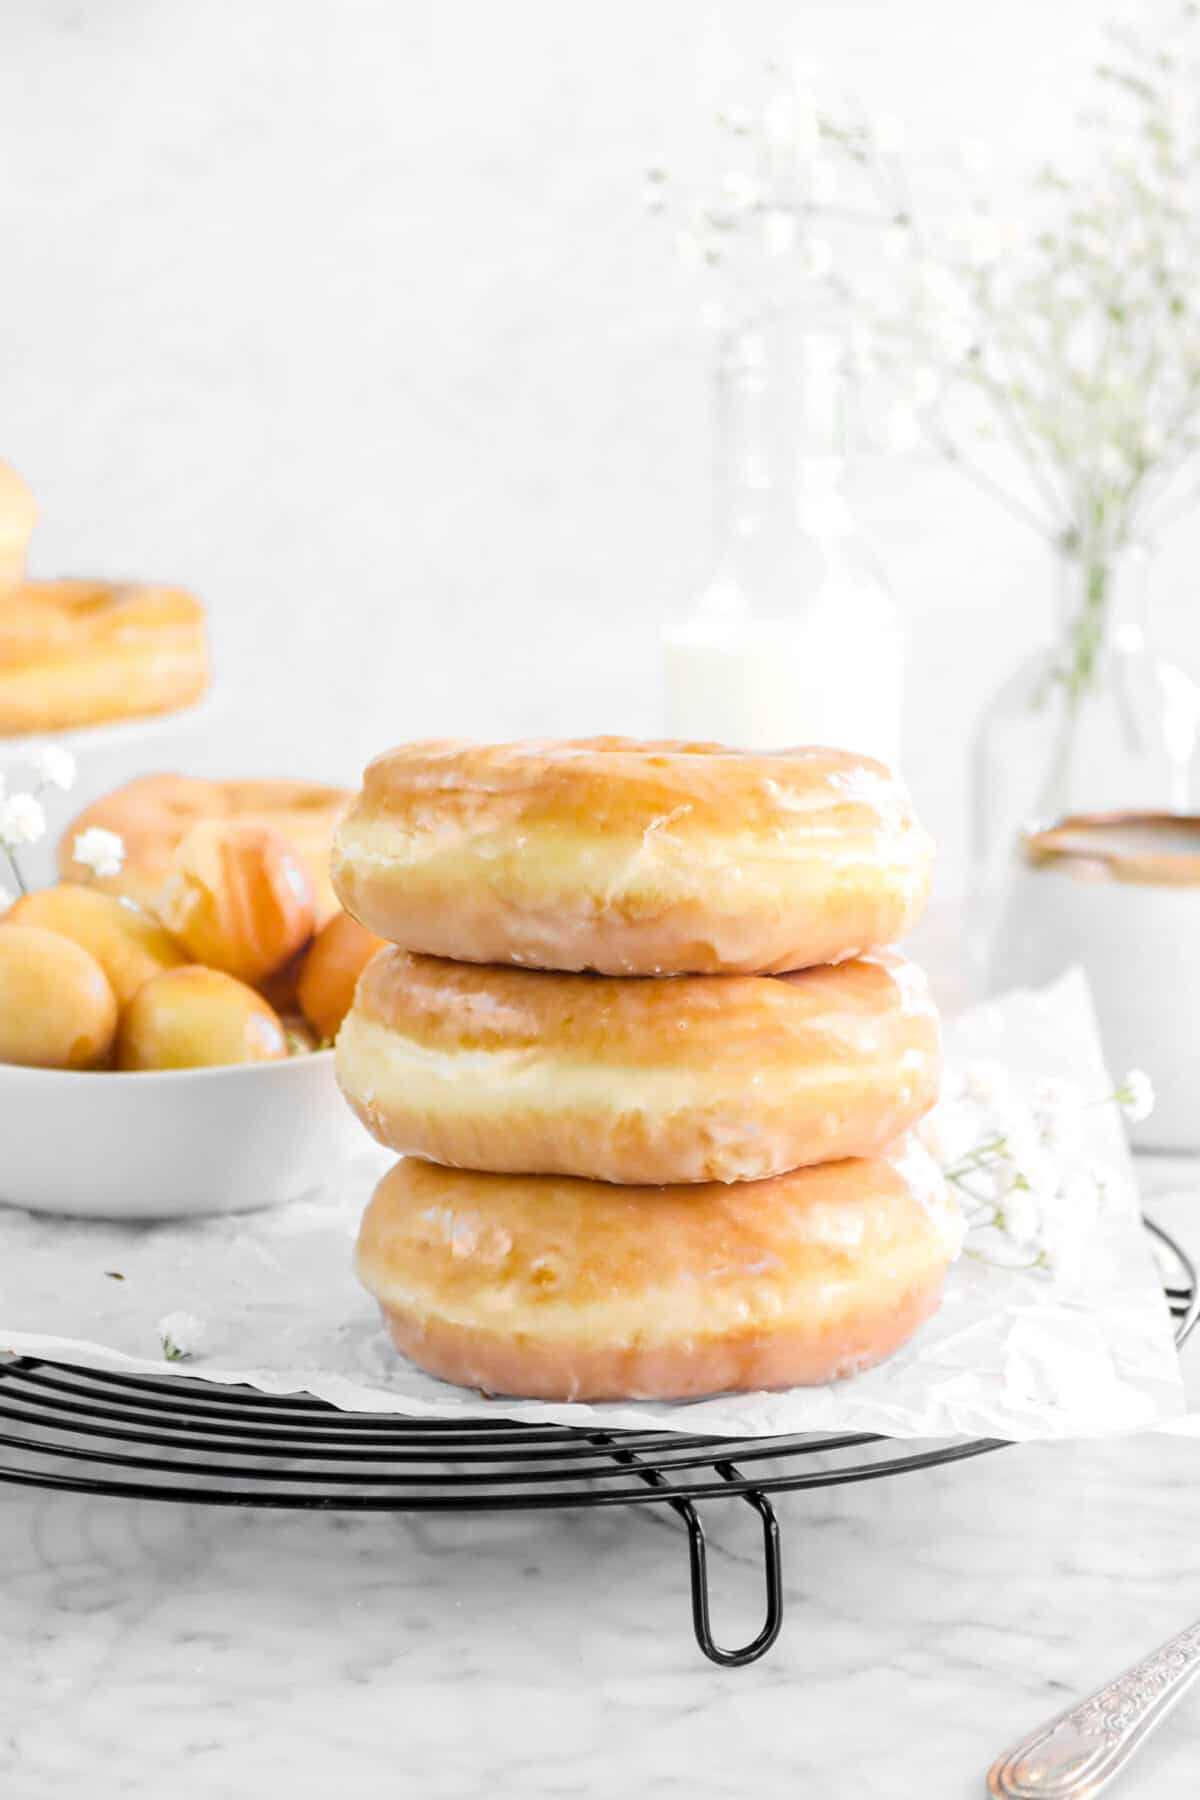 three stacked doughnuts on wire cooling rack with more doughnuts behind, flowers, and glass of milk